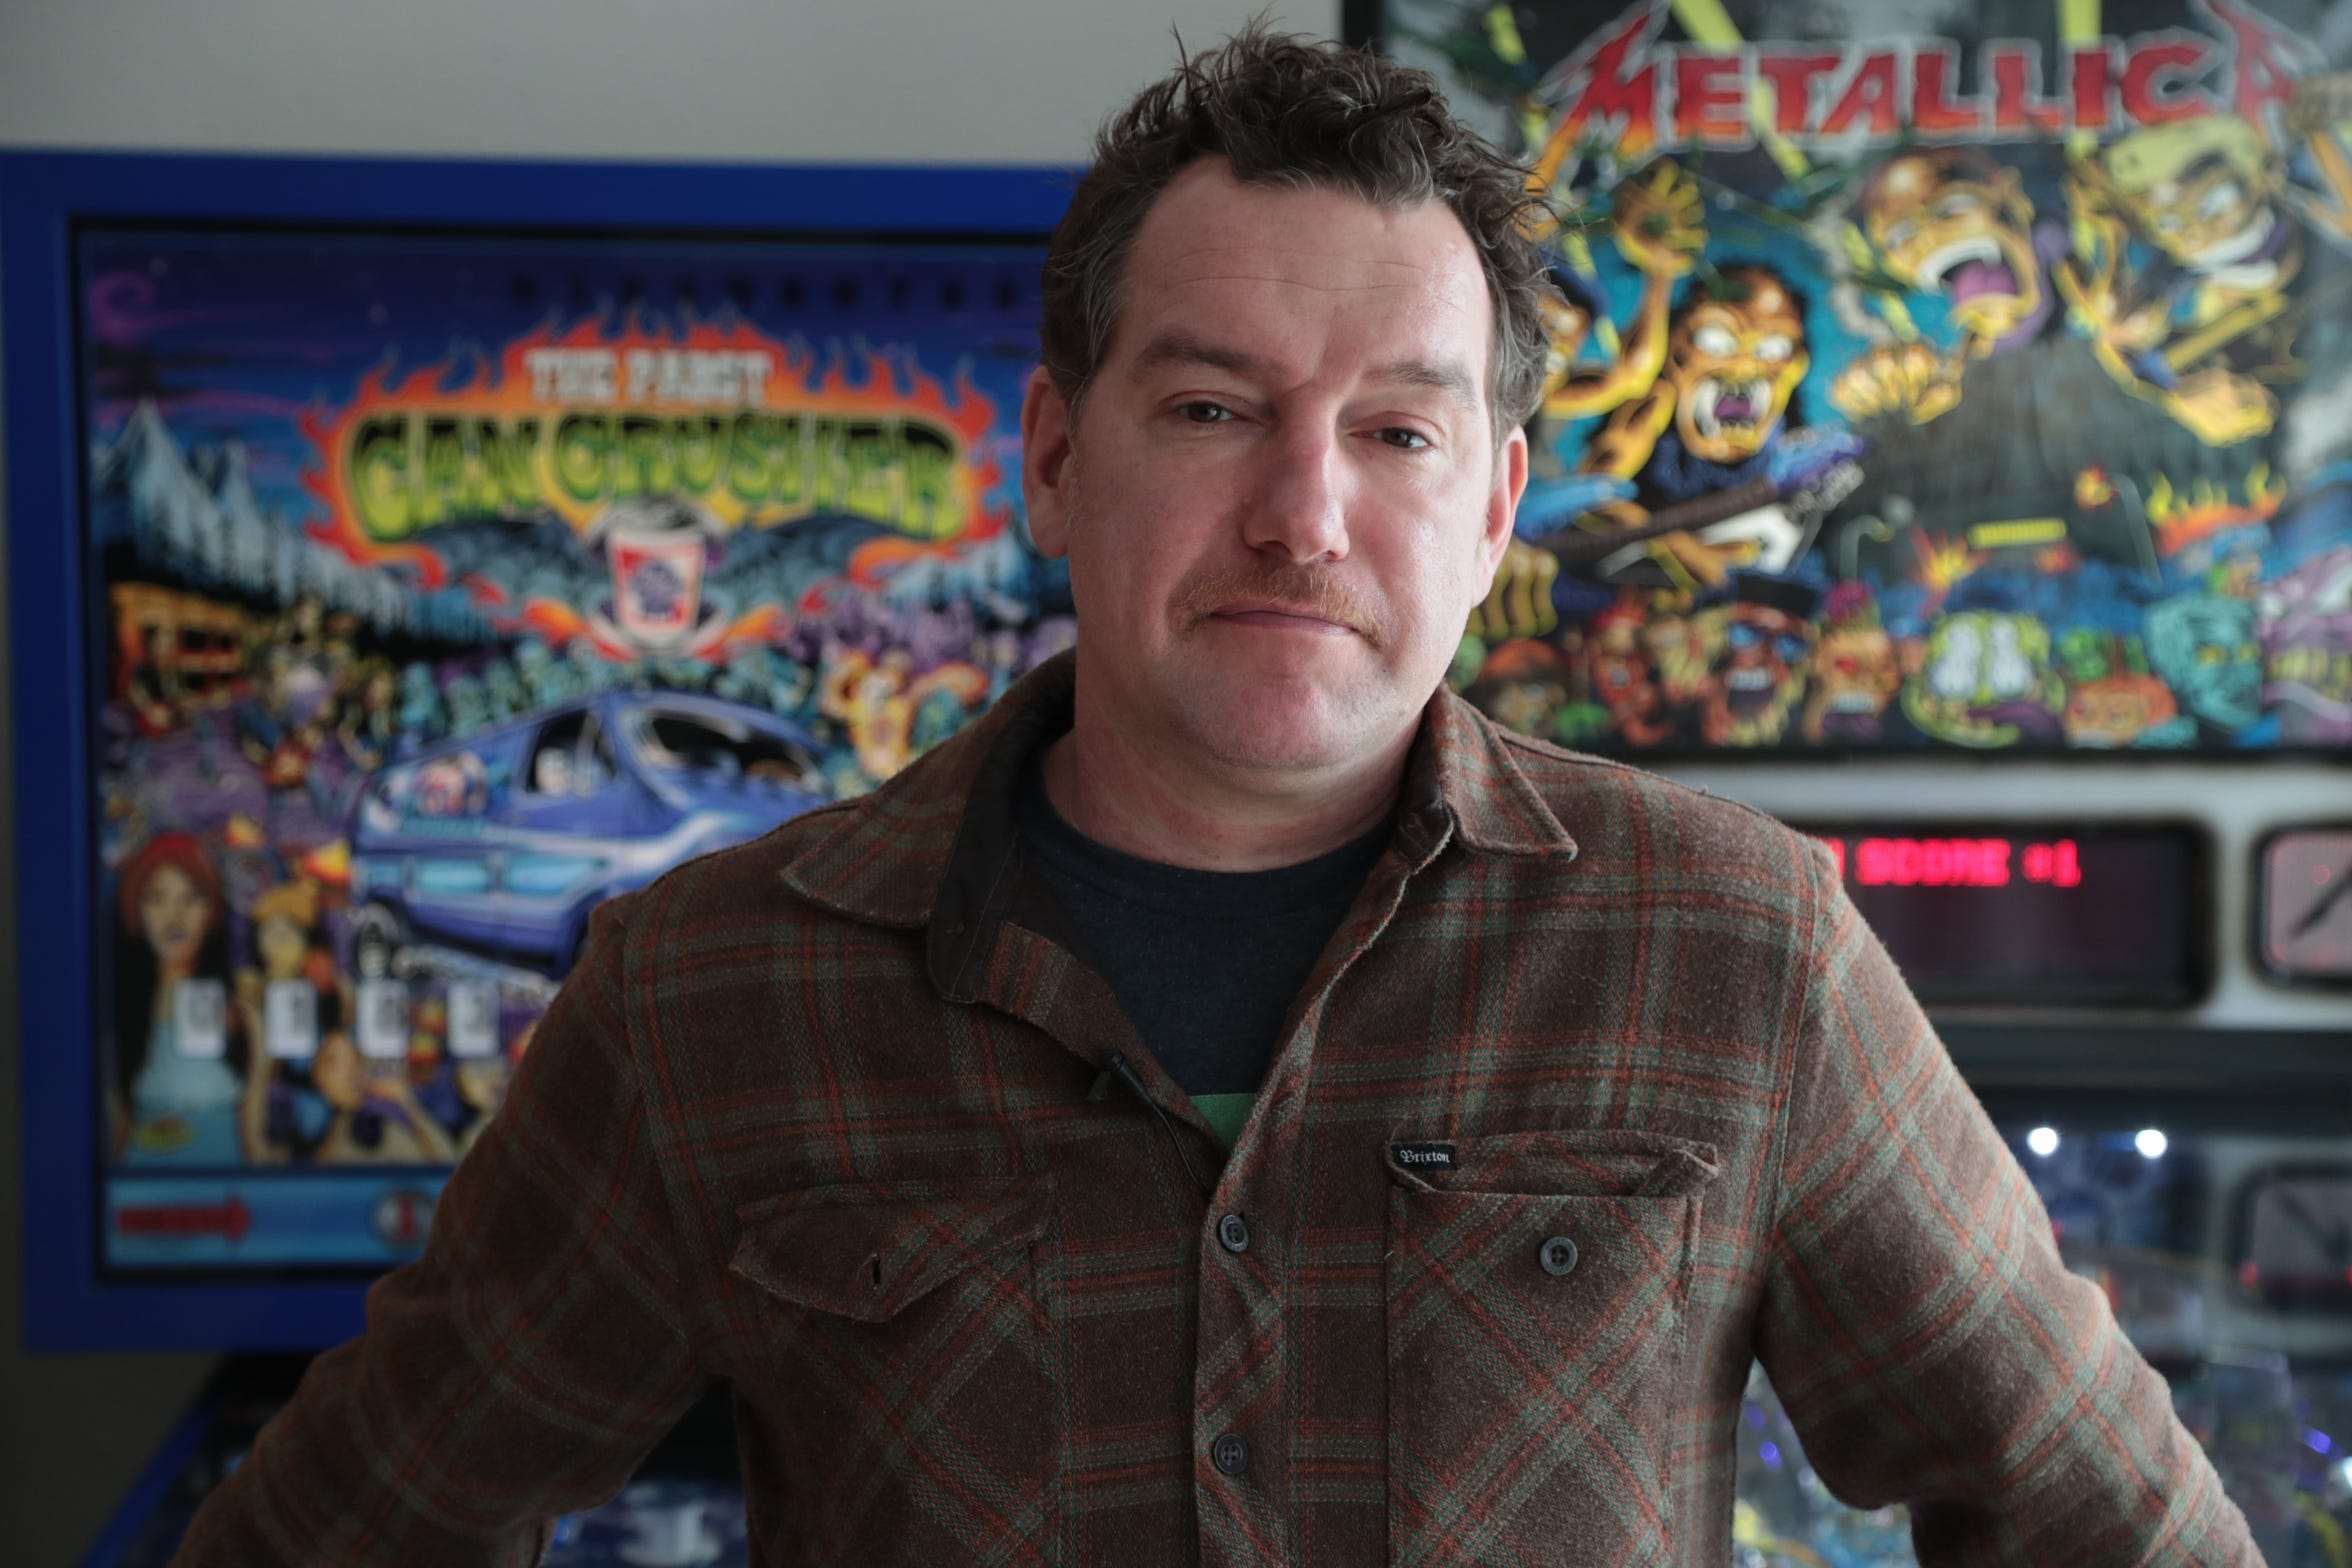 Artist Donny Gillies has become a leading artist of pinball game designs, Palm Desert, Calif., February 13, 2019.